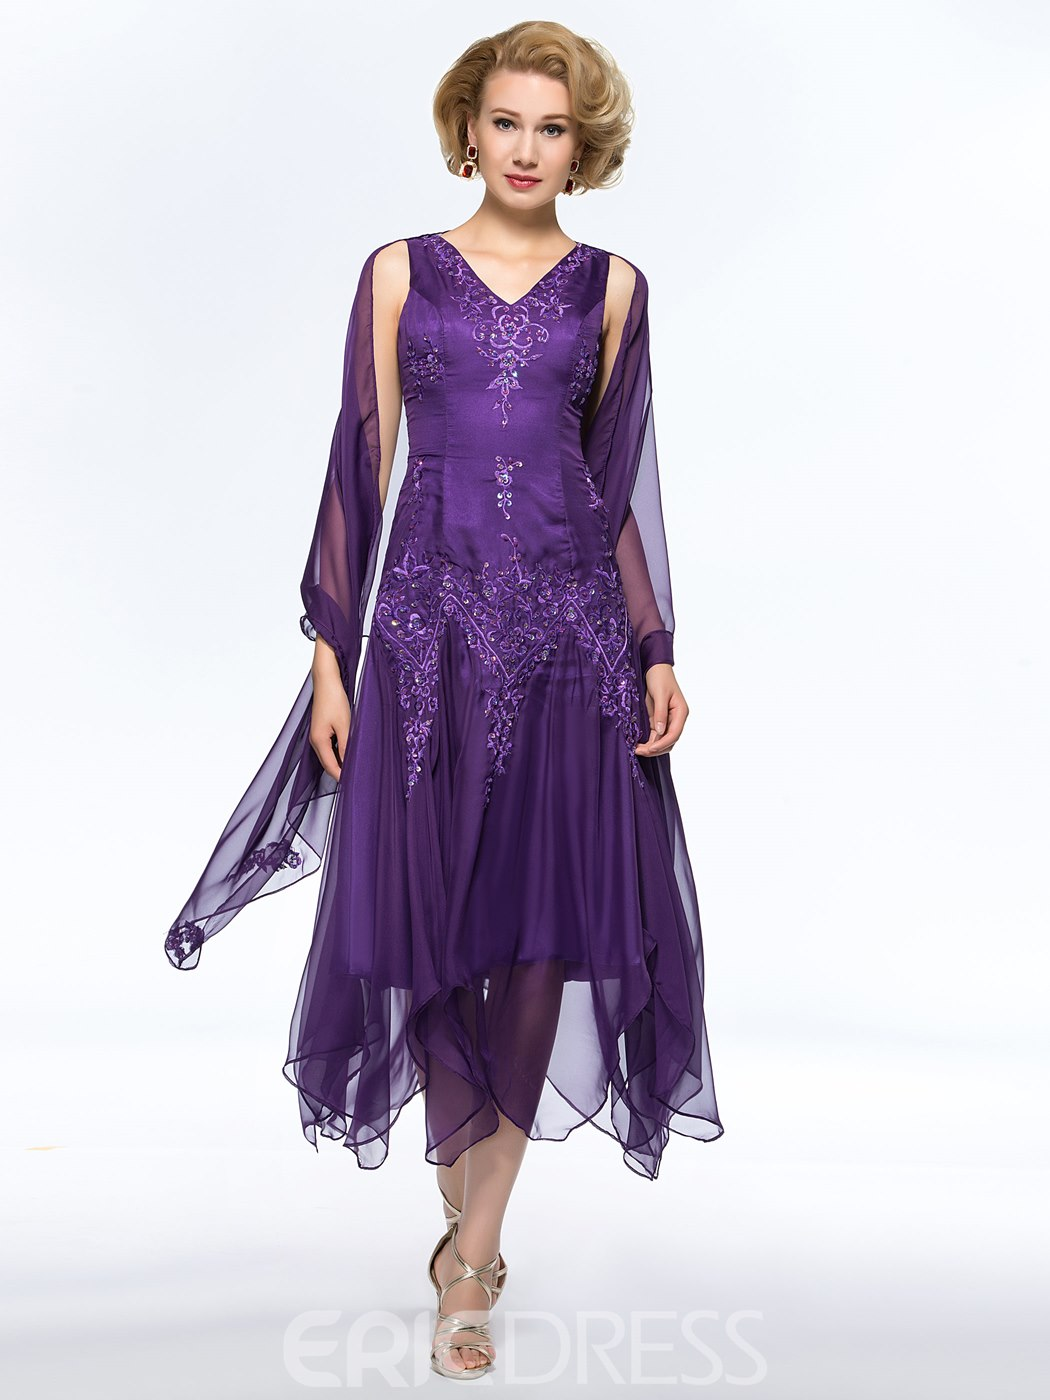 2806b585cb7 Classy A-Line V-Neck Appliques Asymmetry Mother of the Bride Dress With  Jacket Shawl(11068351)